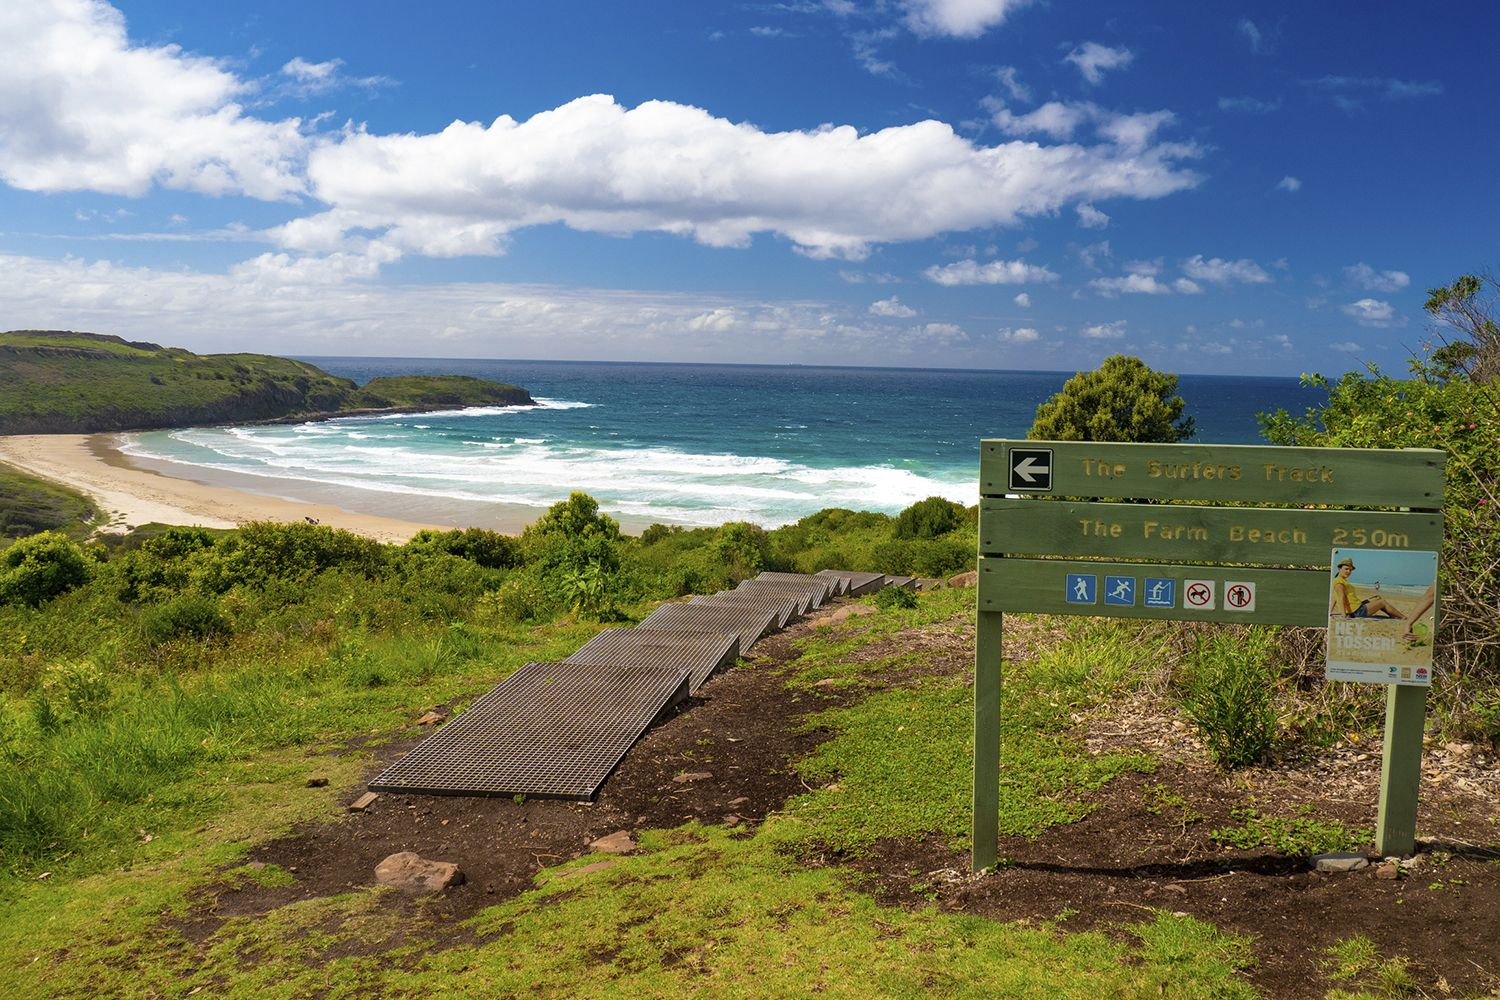 The surfers track down to Farm Beach in Killalea State Park, Shellharbour